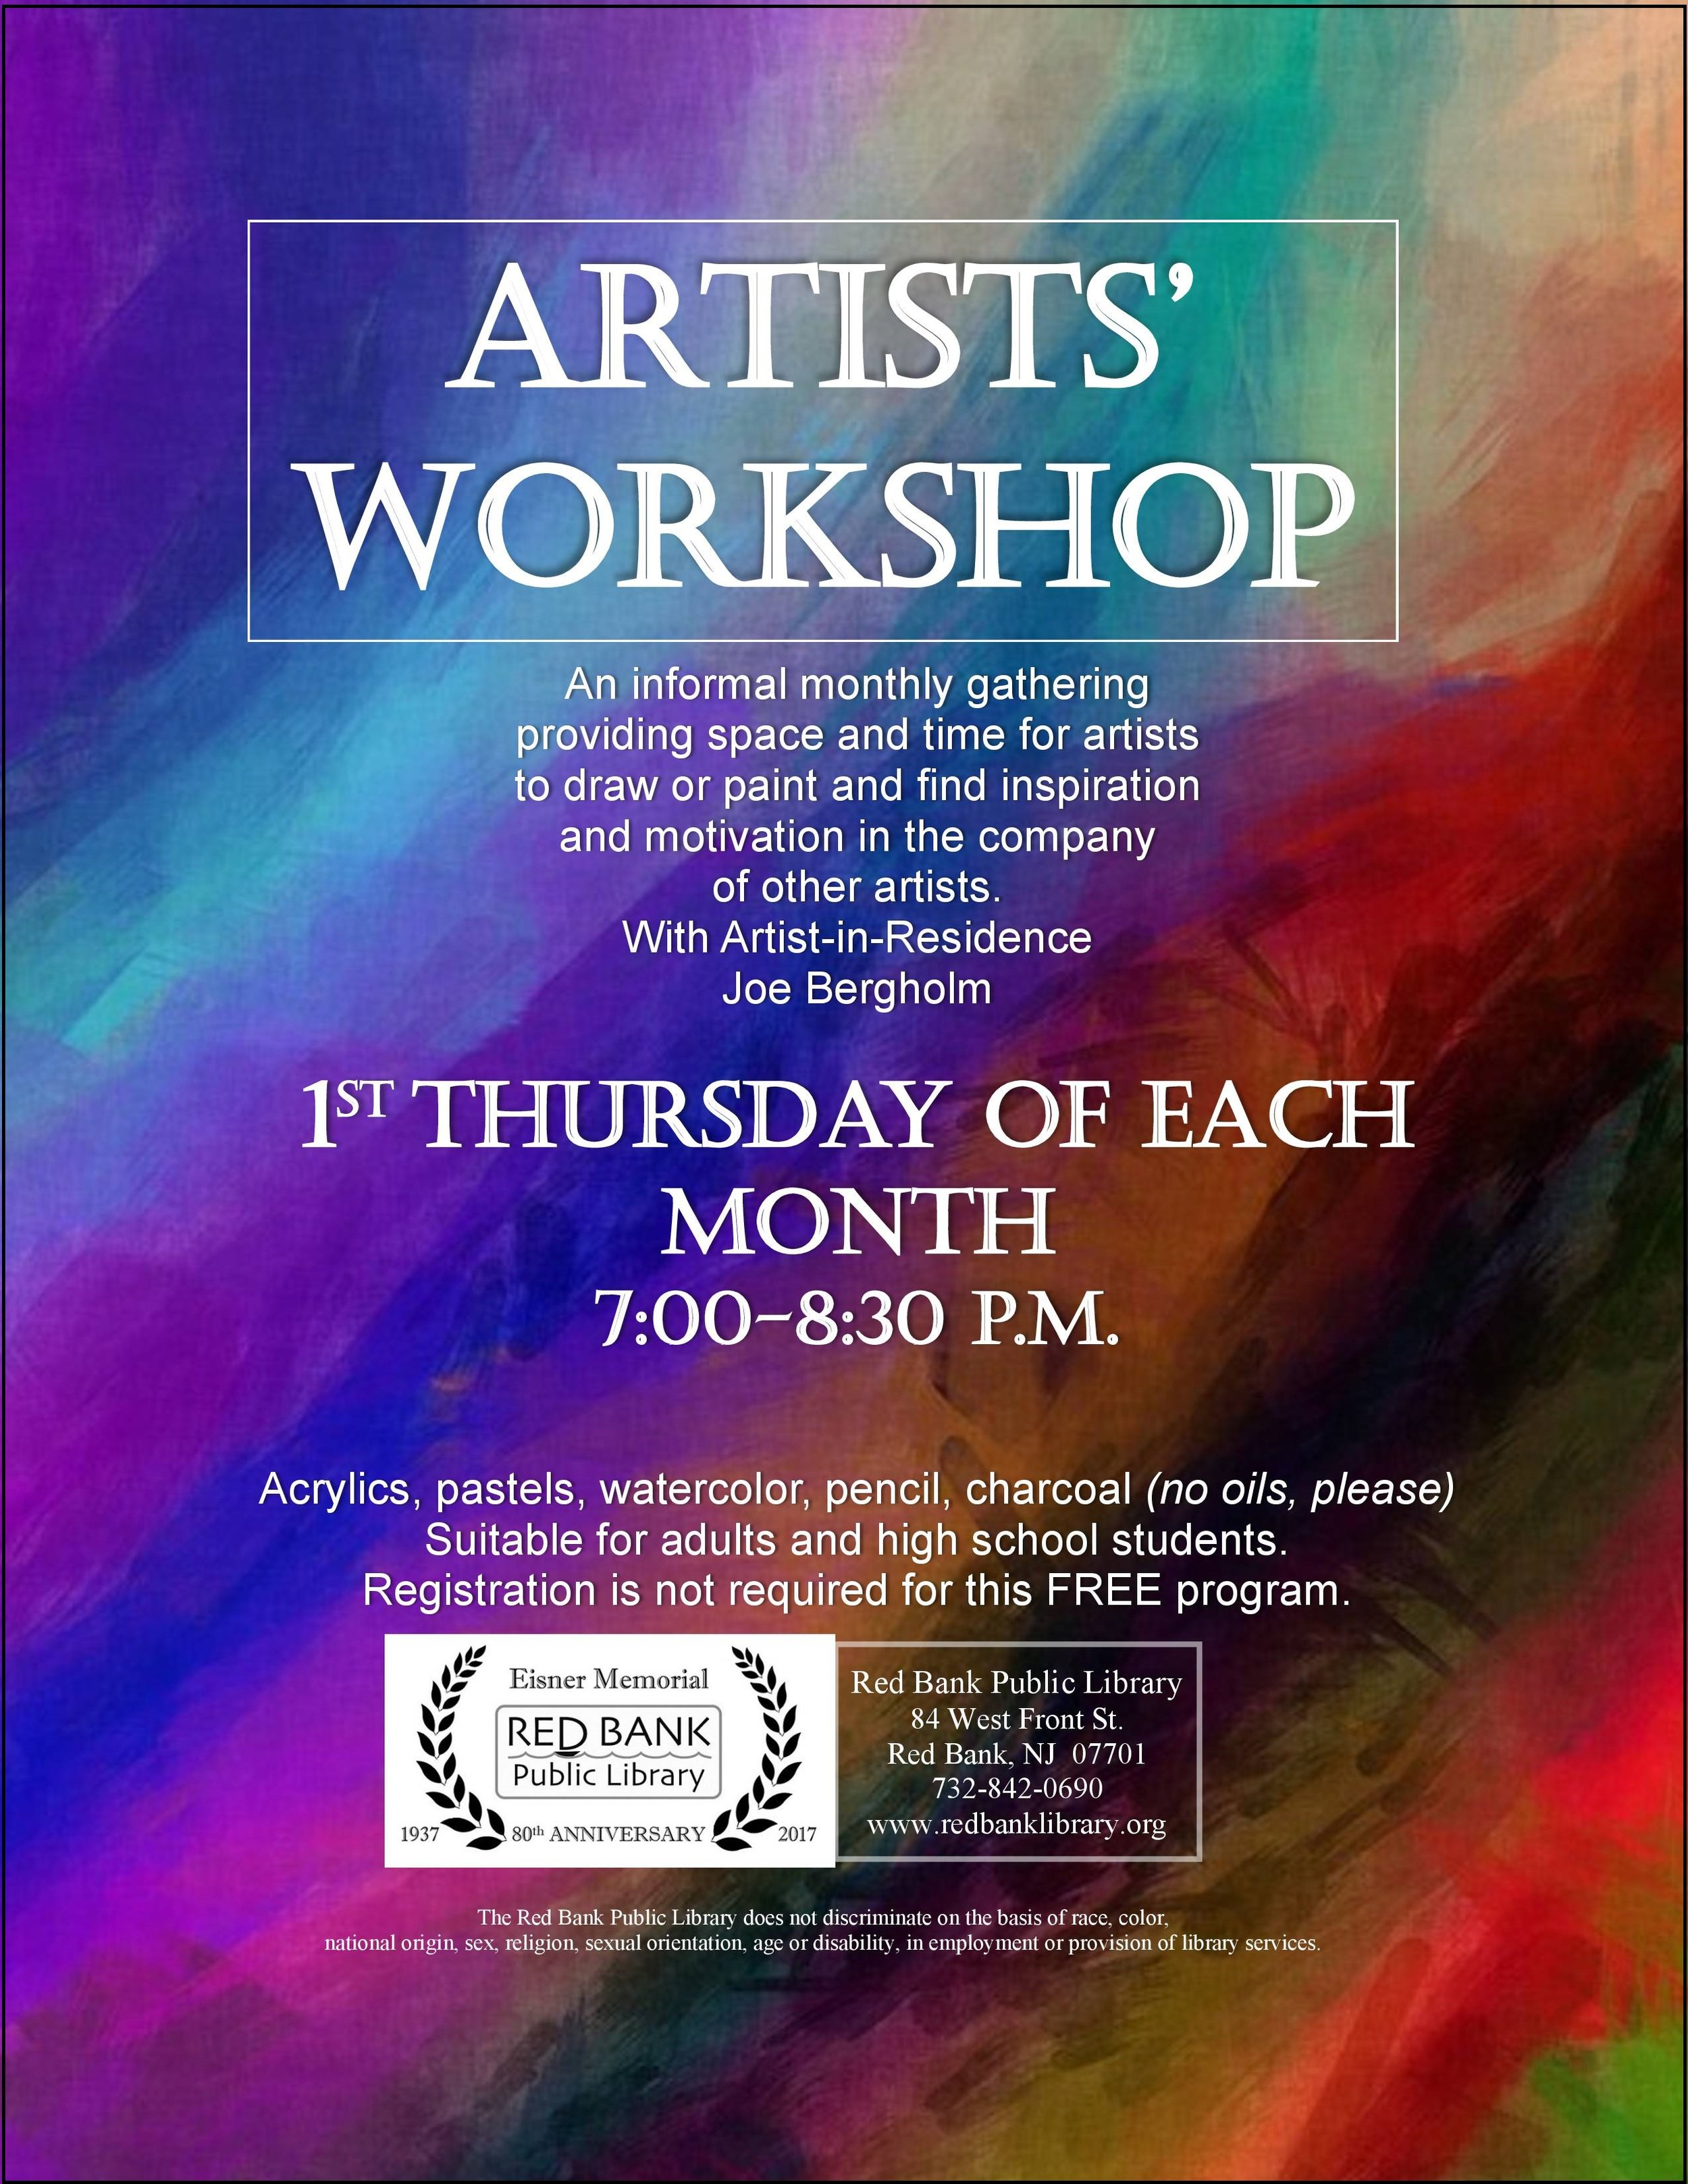 Flyer_ArtistsWorkshop_2017.2.jpg